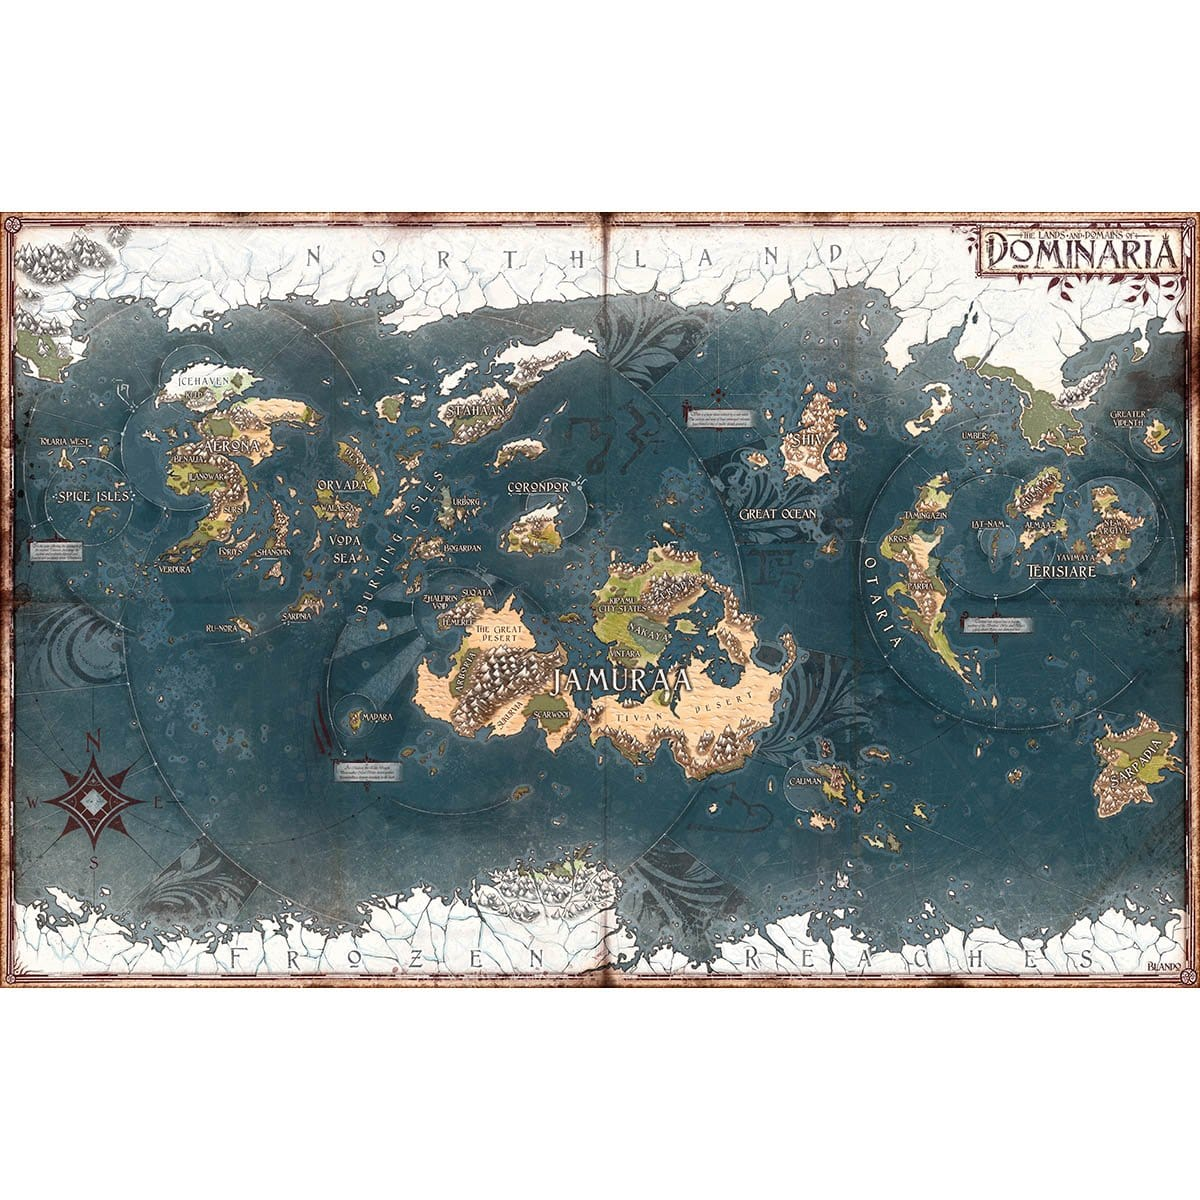 Dominaria Map Print - Print - Original Magic Art - Accessories for Magic the Gathering and other card games